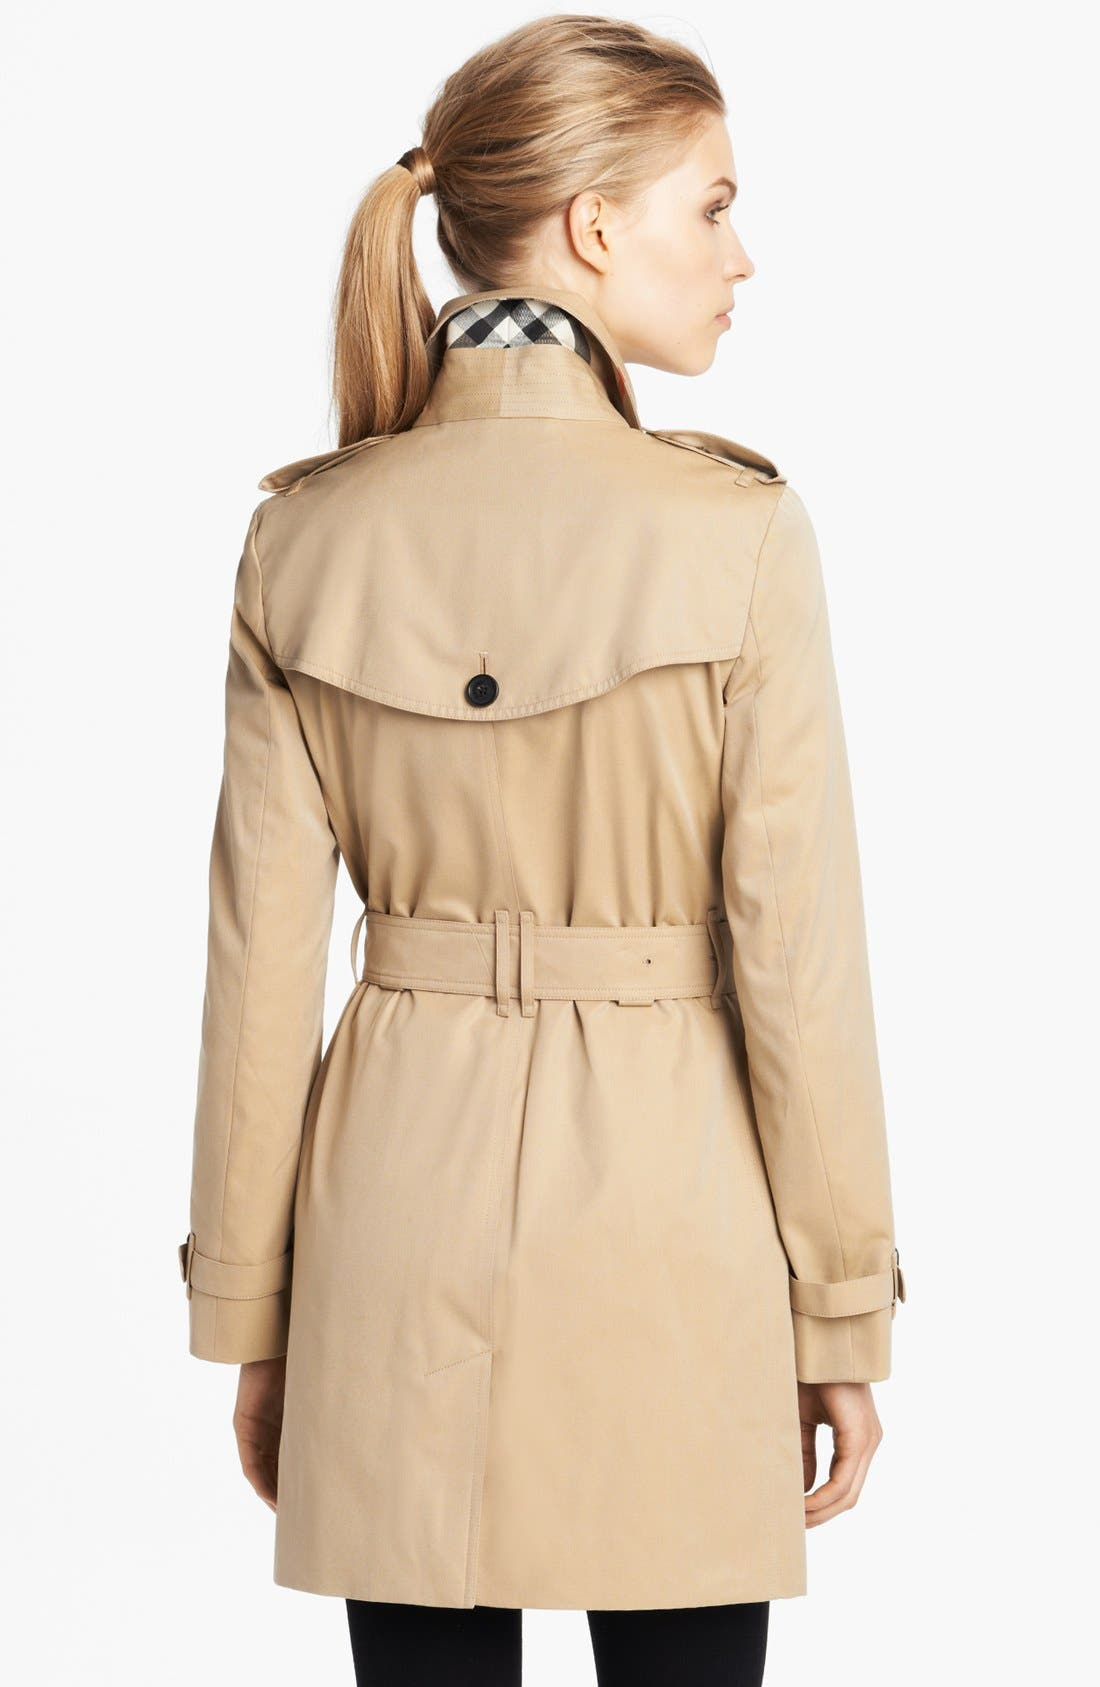 'Buckingham' Double Breasted Cotton Trench,                             Alternate thumbnail 2, color,                             Honey